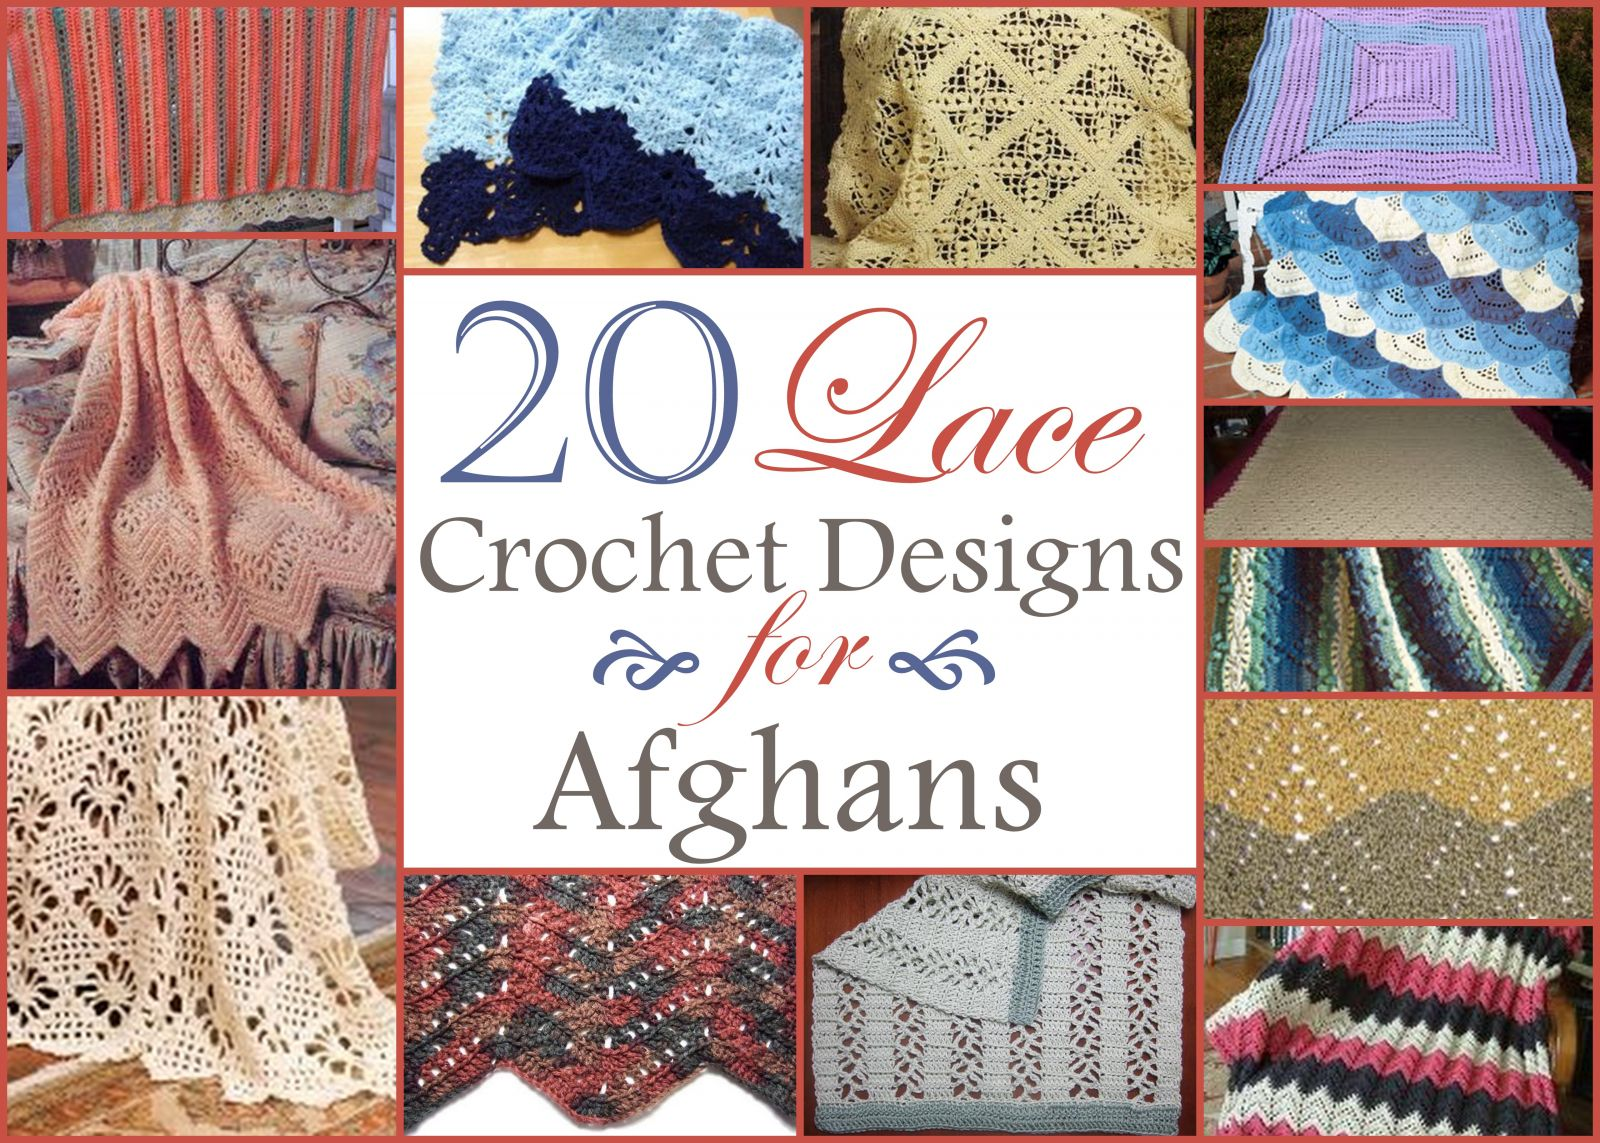 Bedspread designs texture - 20 Lace Crochet Designs For Afghans